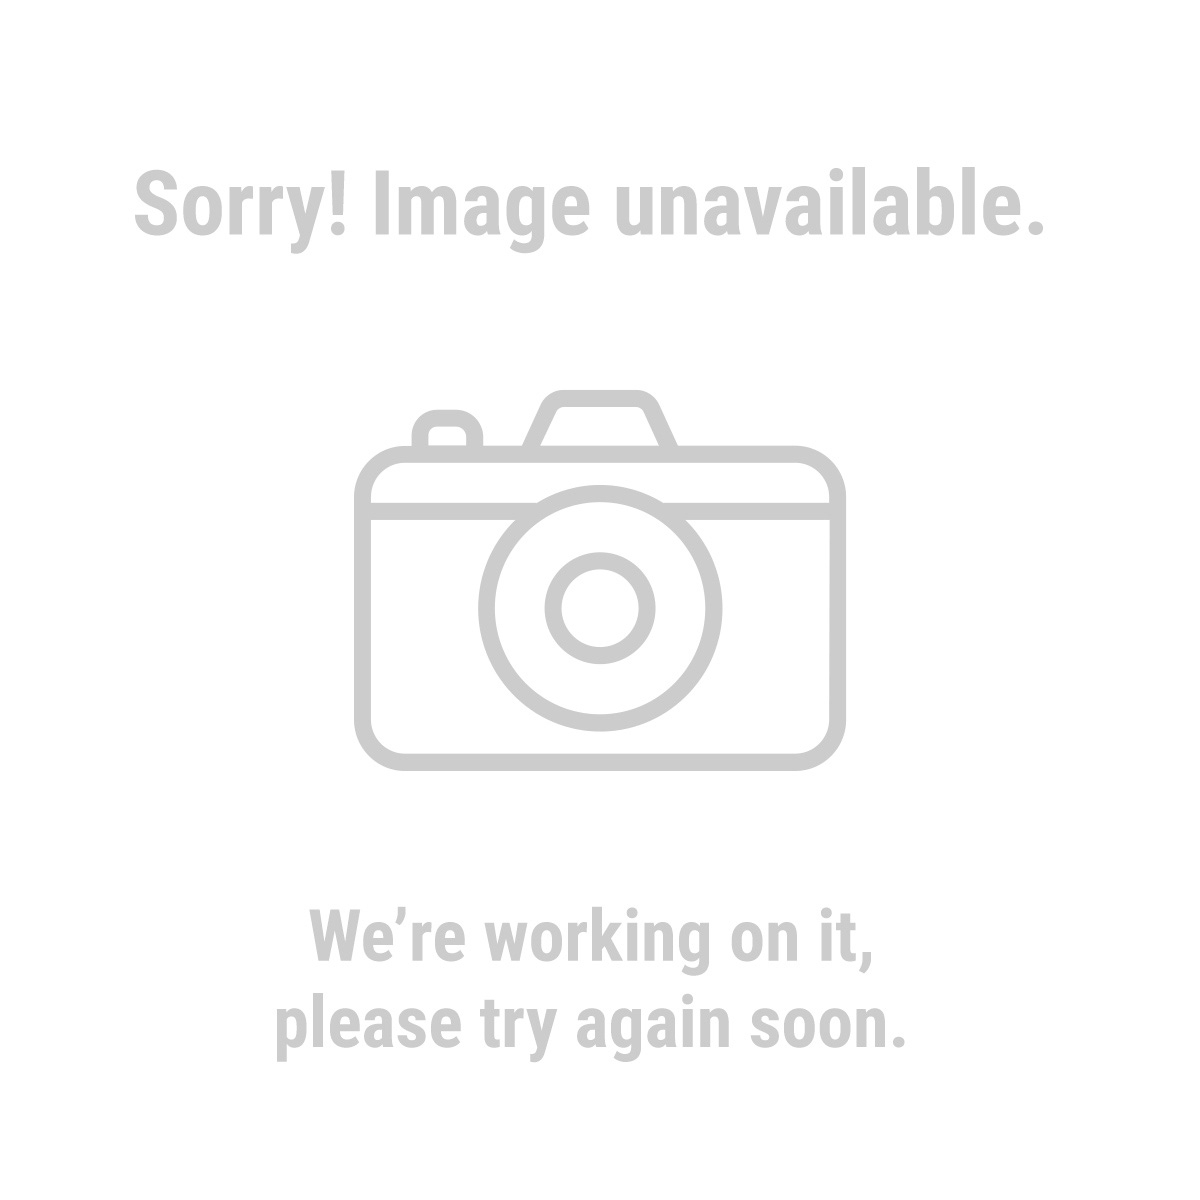 Lynxx 63288 40V Lithium Cordless Hedge Trimmer